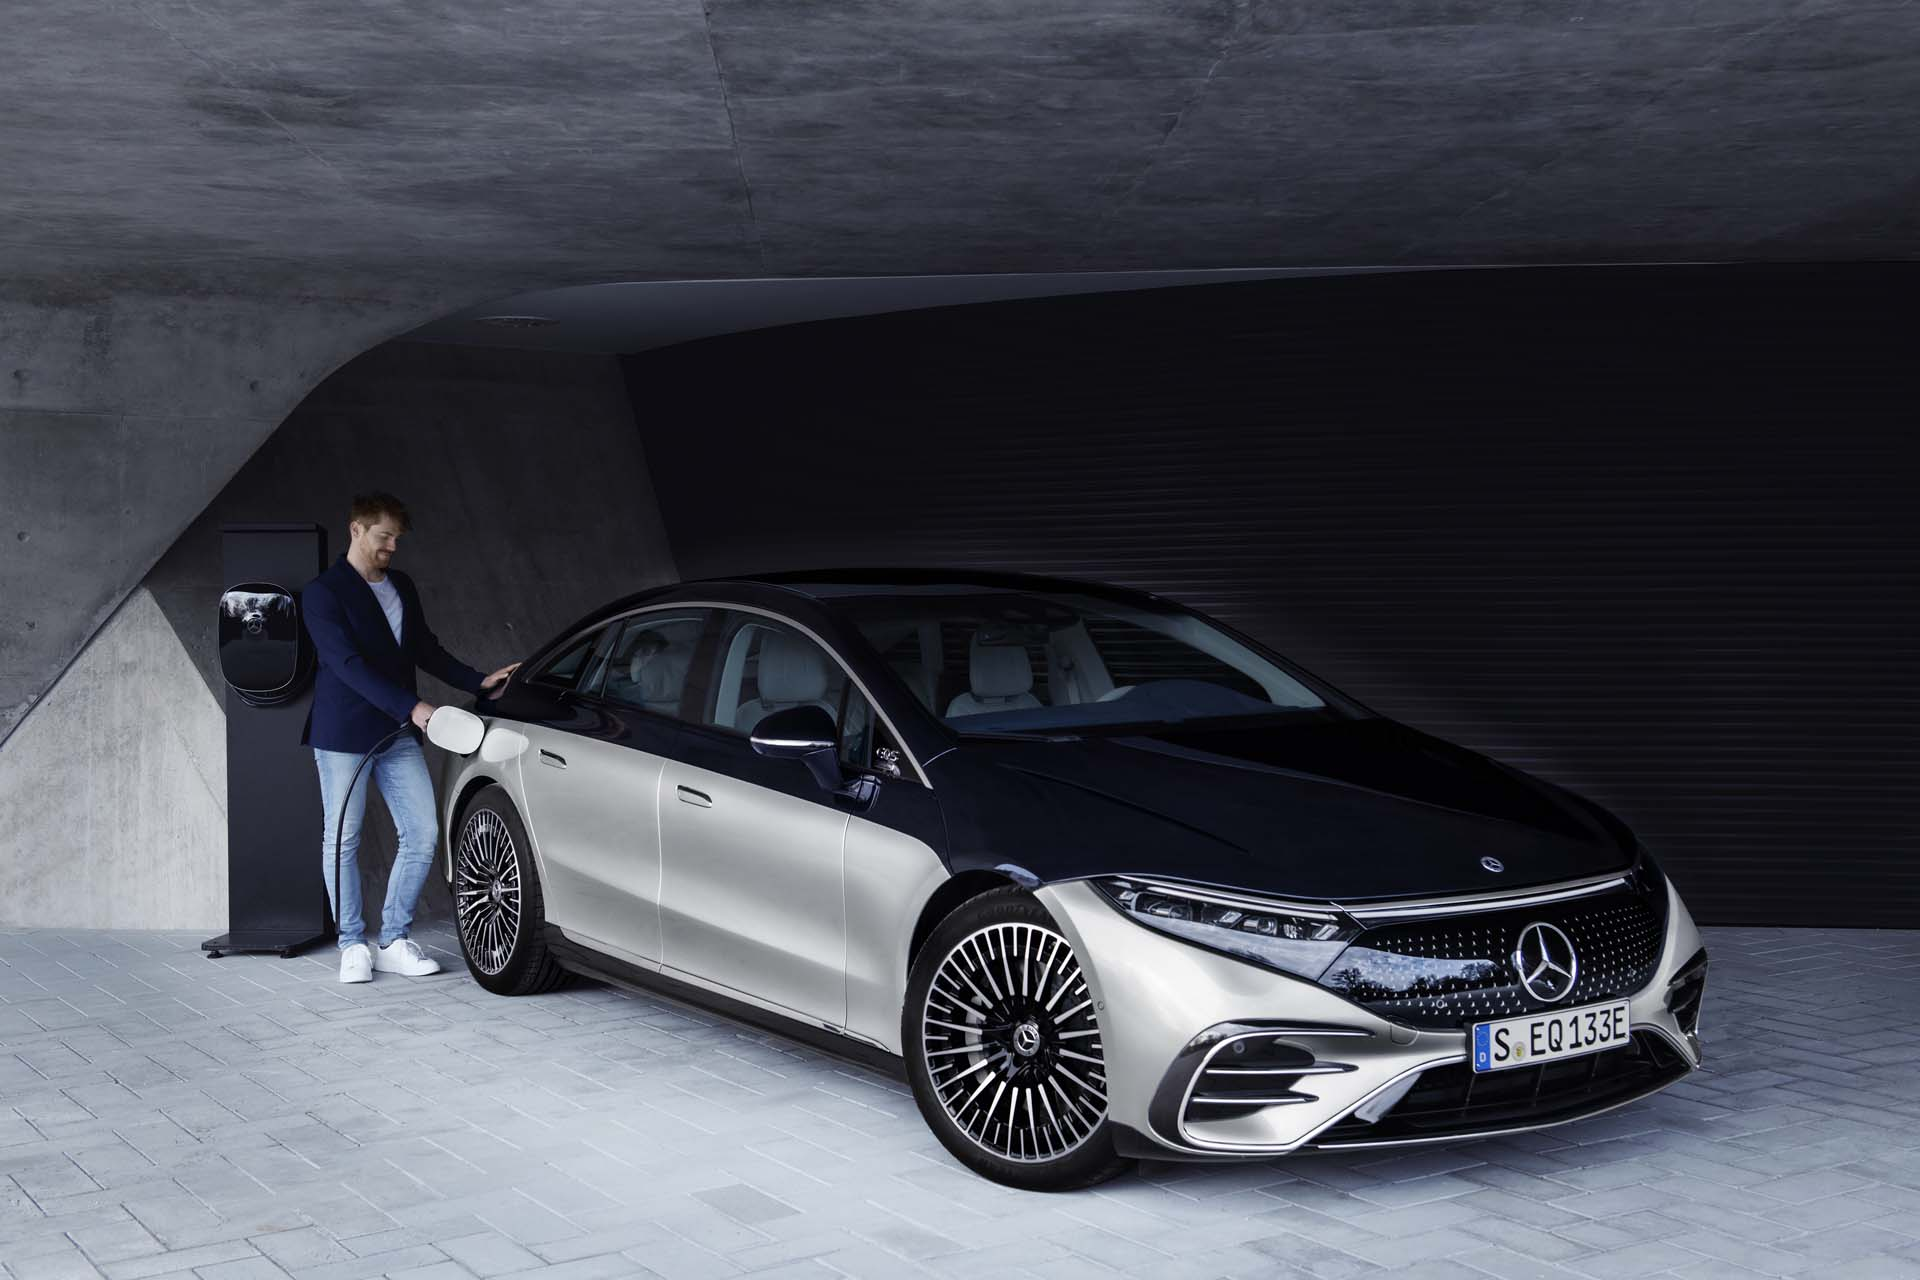 Mercedes-Benz to go full electric by 2030, including AMG division